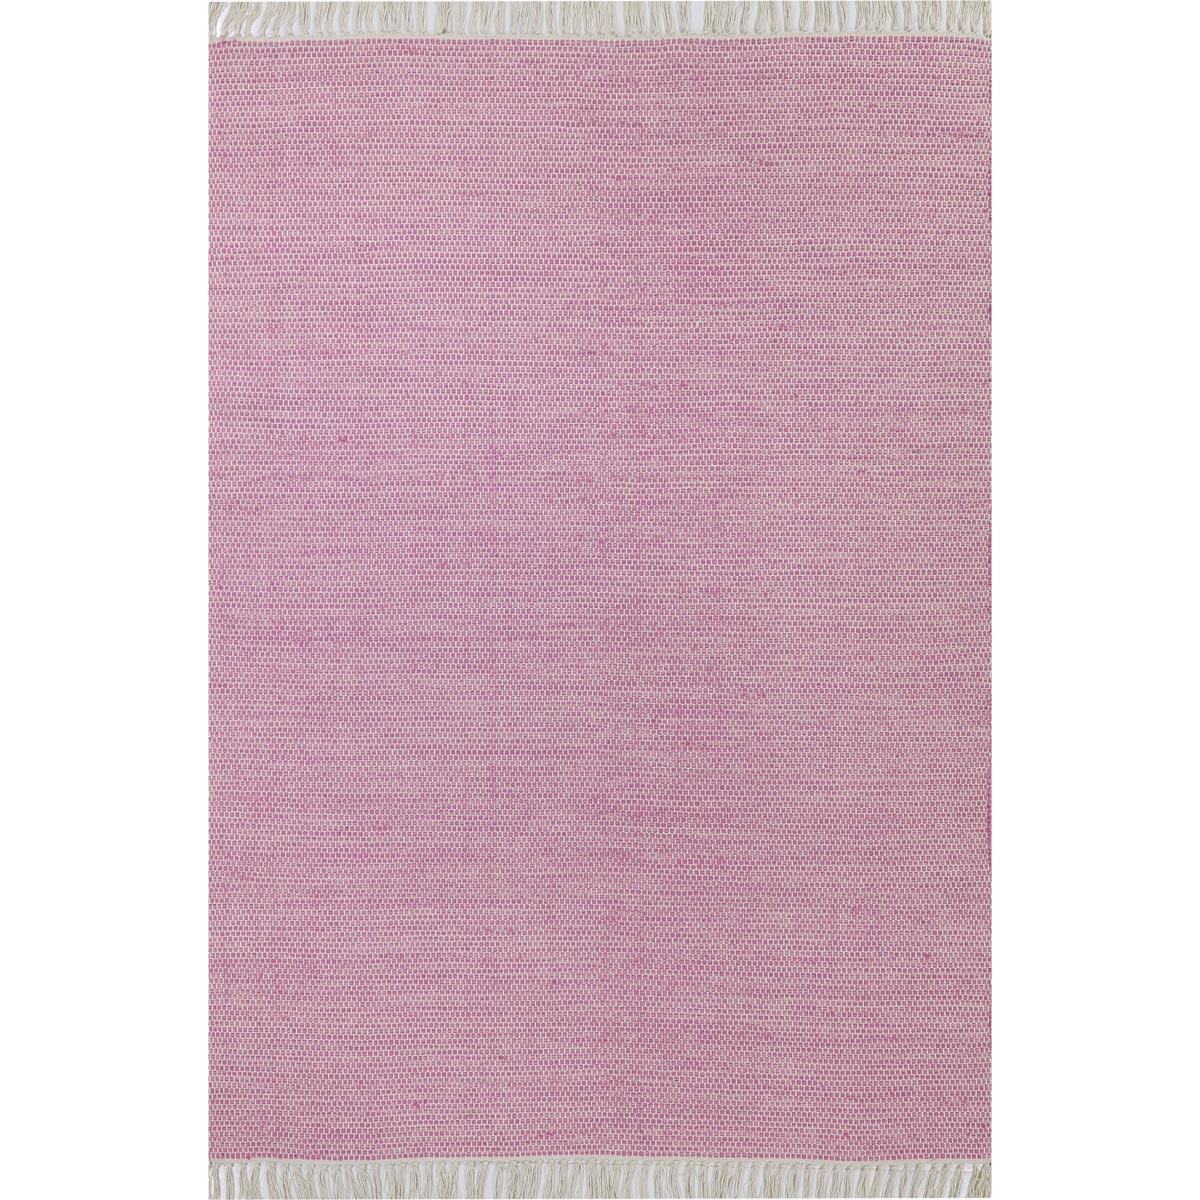 Chicago Rug 01 Dark Pink 1